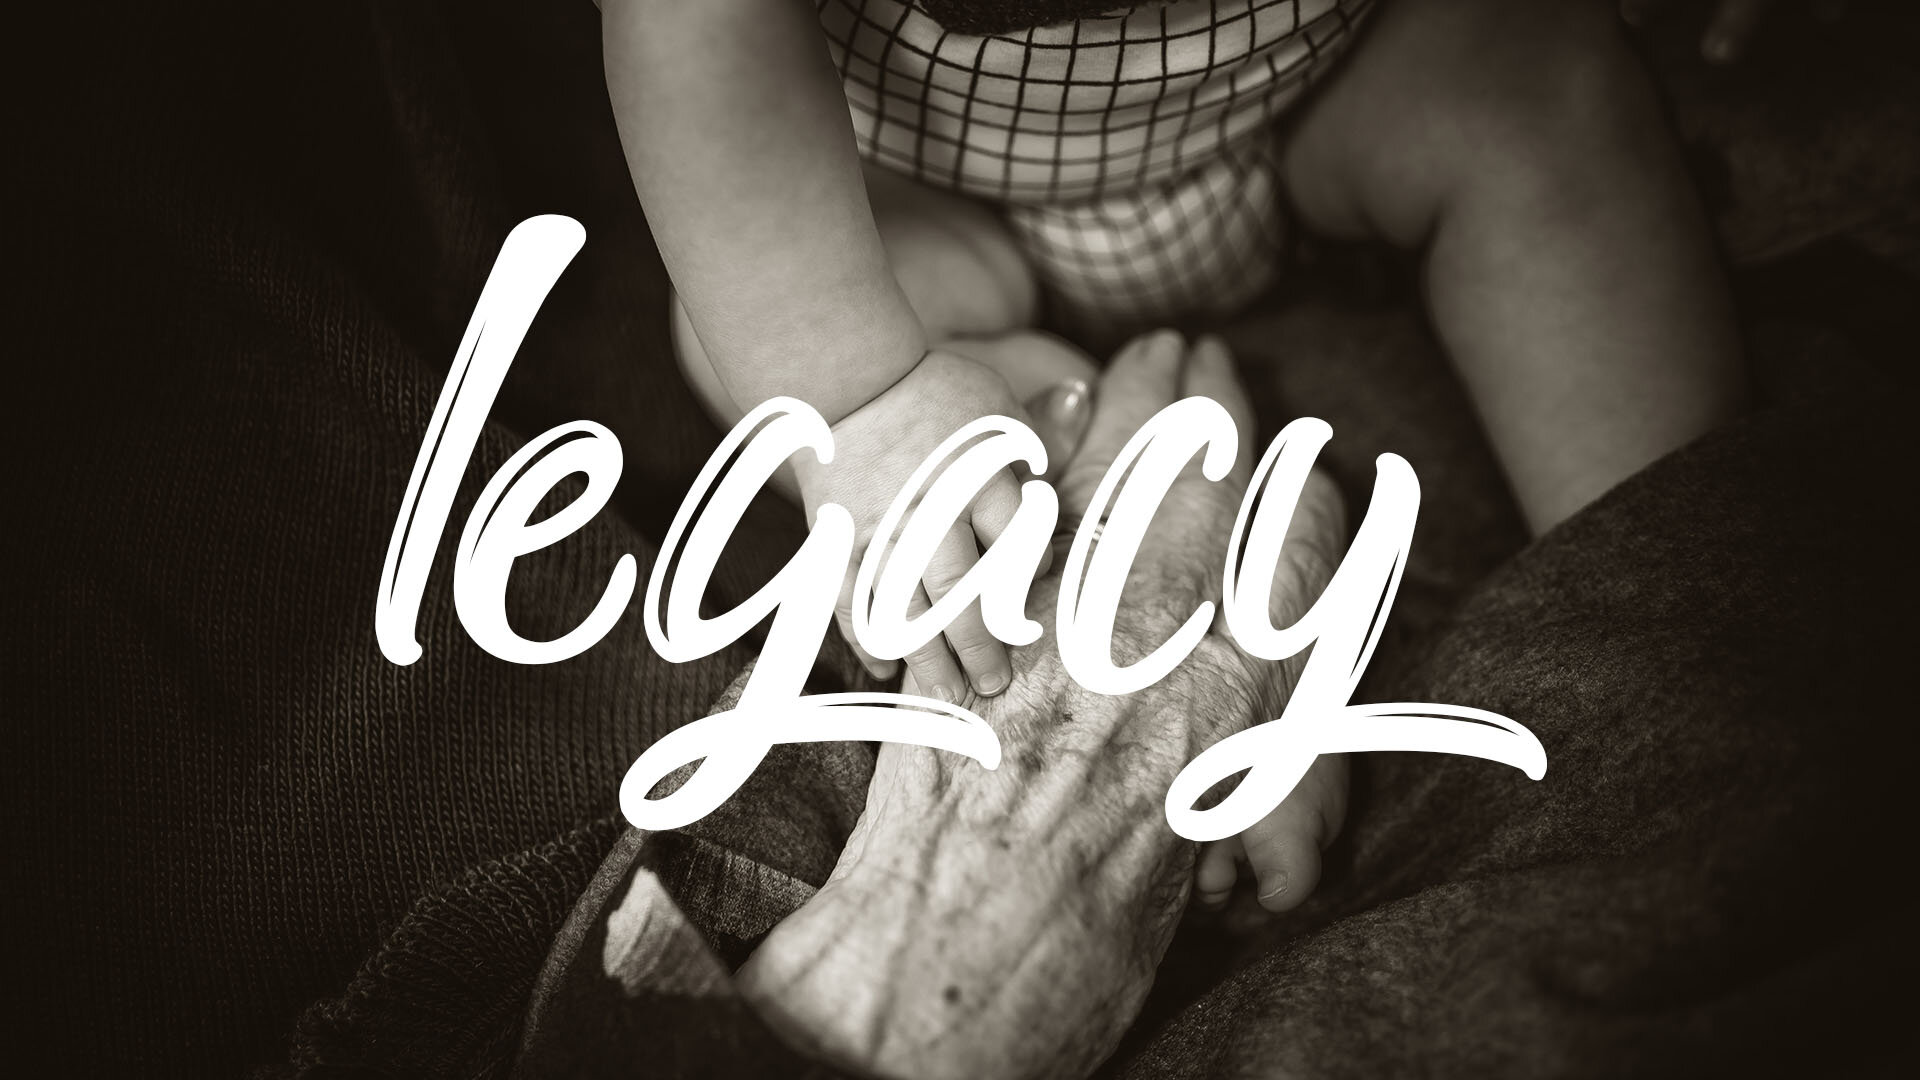 Calling all senior adults! - We all leave a legacy for those who follow. Let's support one another in this journey.